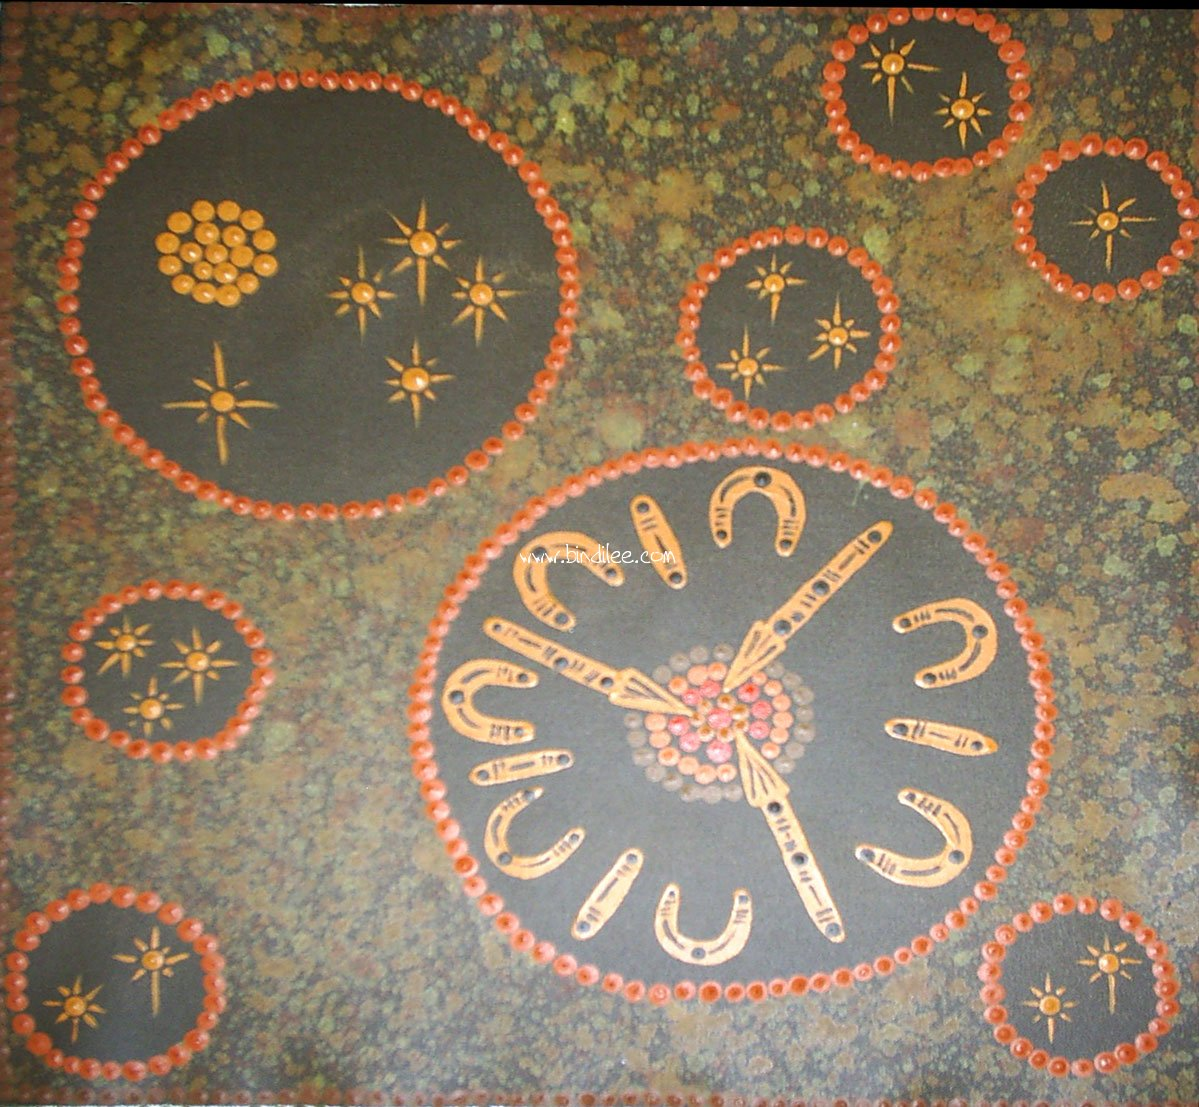 Country - 1 - Bindi Lee Australian Indigenous Artist